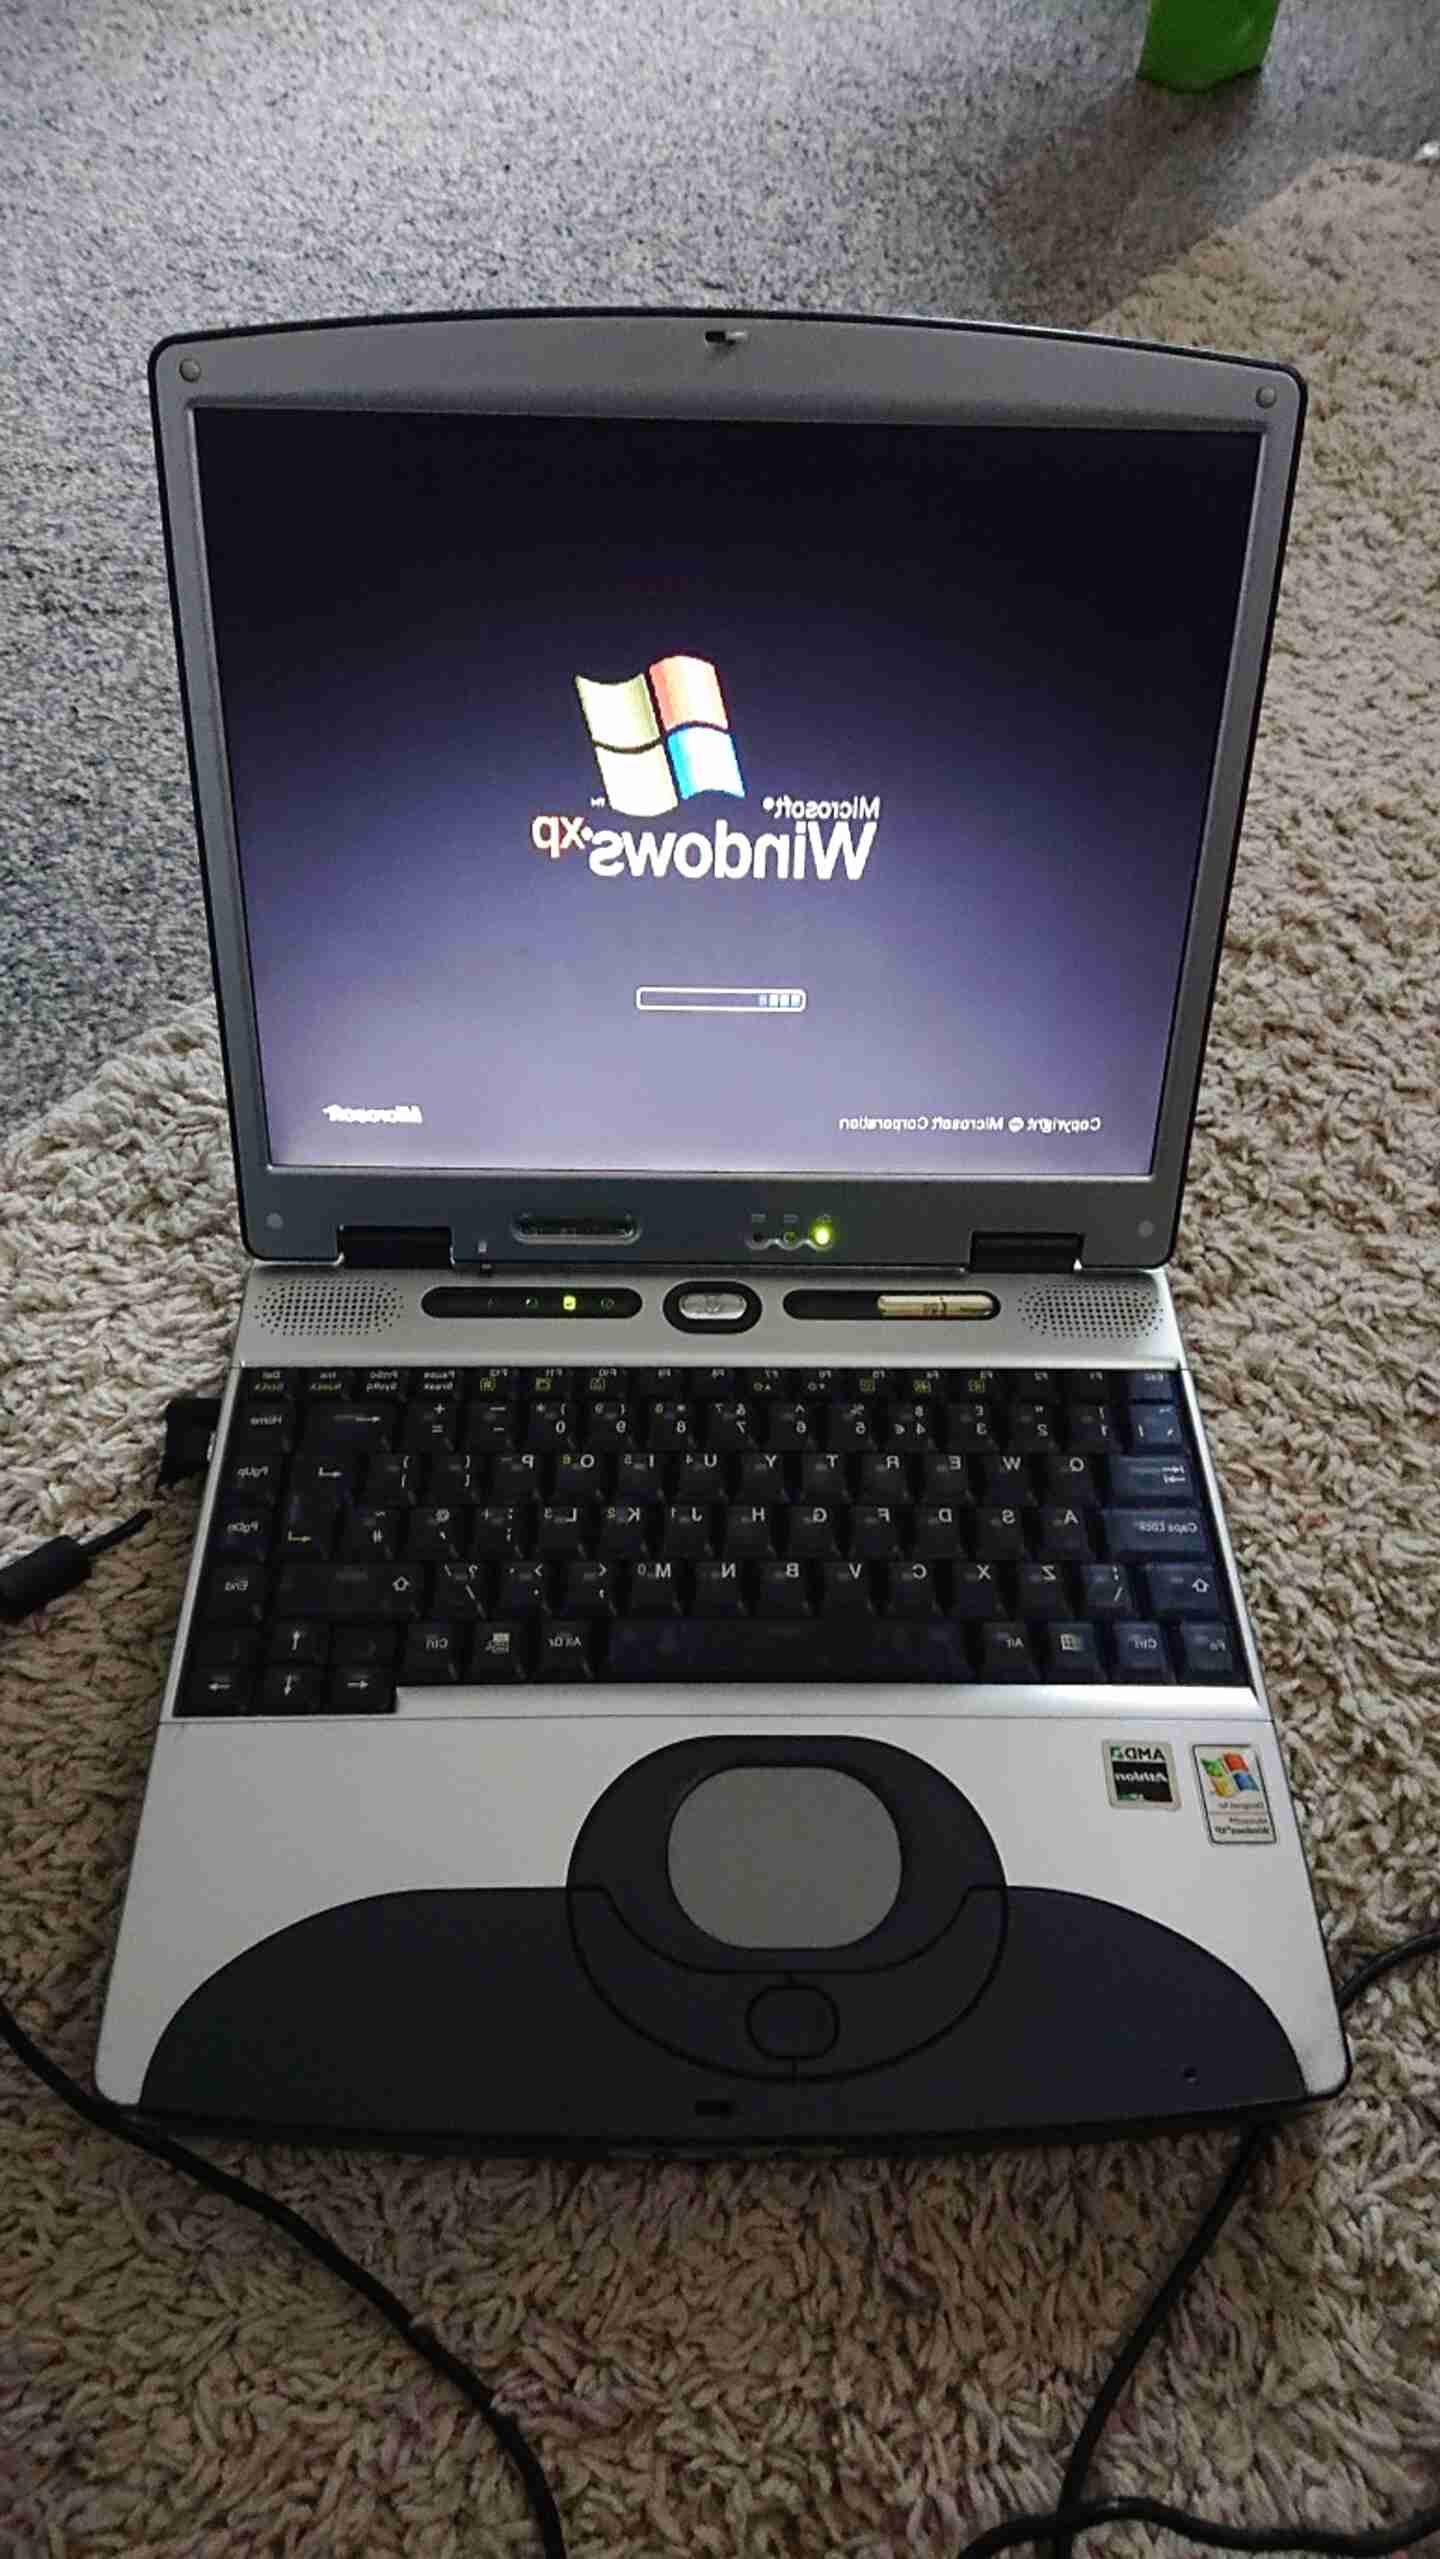 packard bell spares repairs for sale